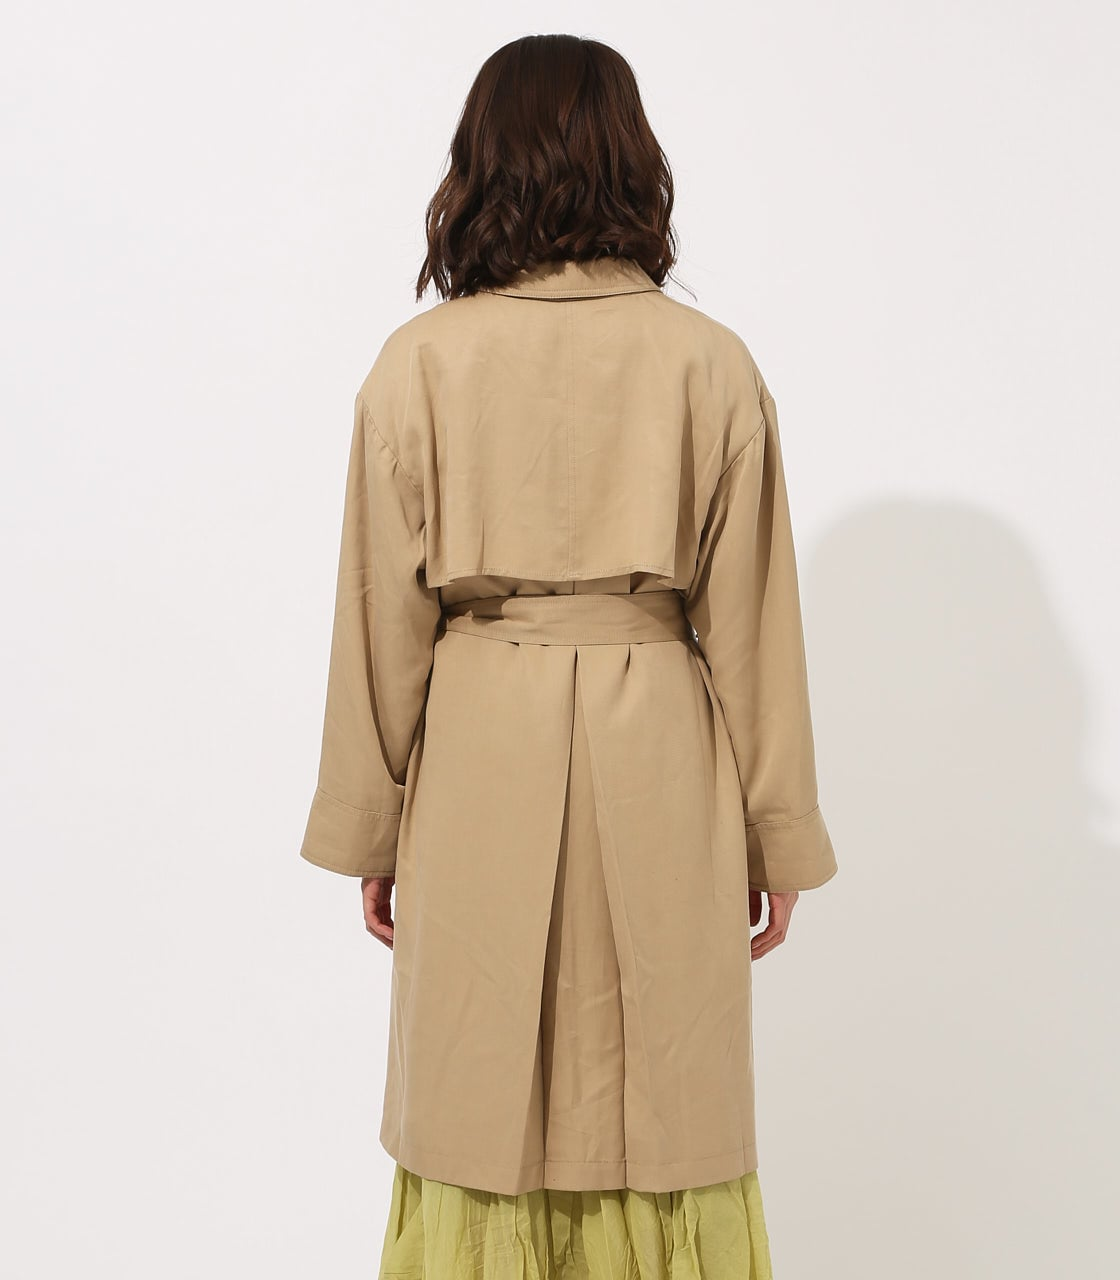 LYOCELL TRENCH COAT 【MOOK49掲載 90015】 詳細画像 BEG 7